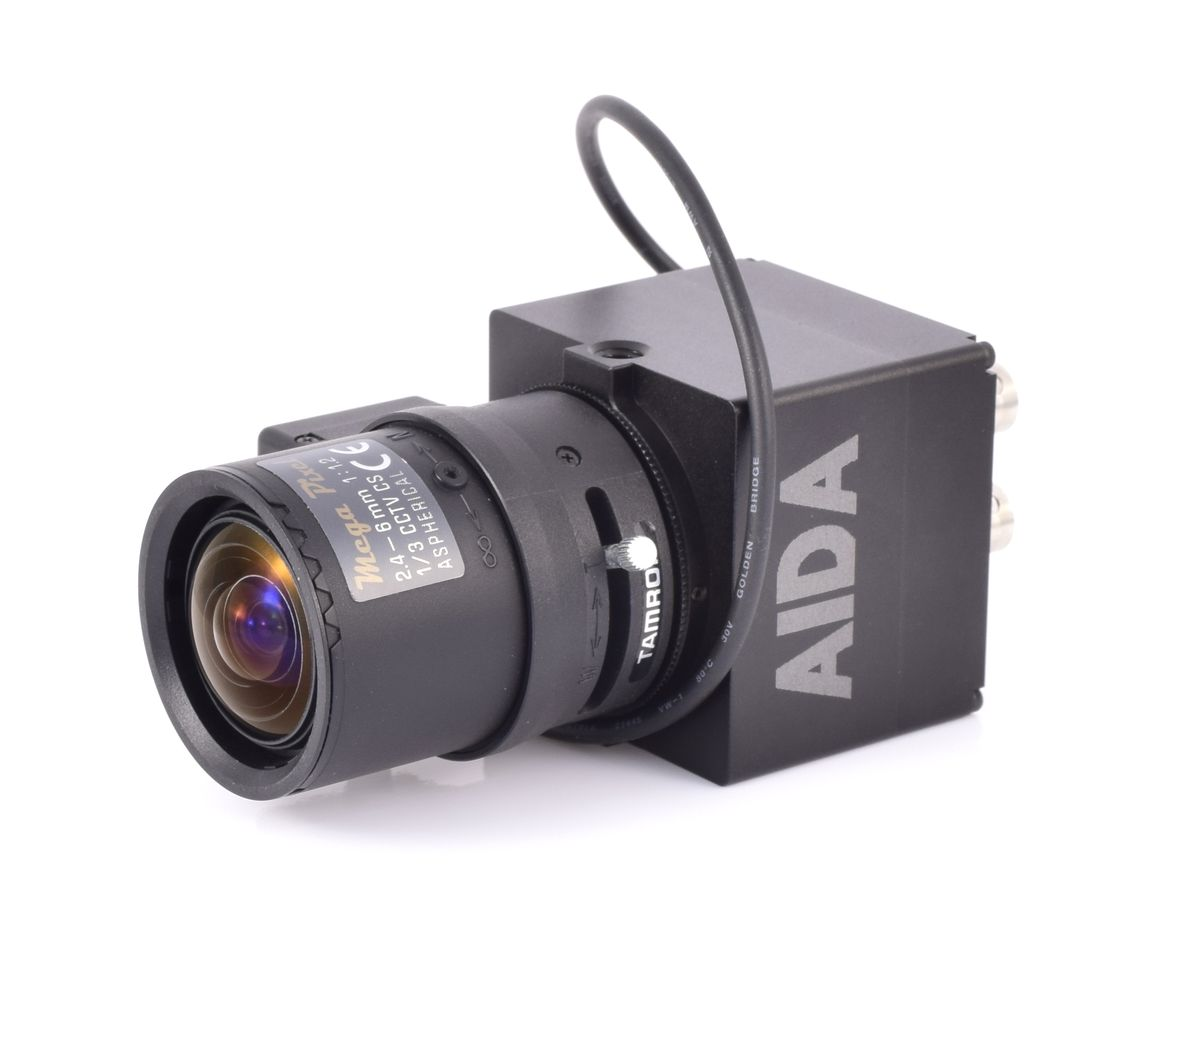 AIDA Imaging GEN3G-200 3G-SDI/HDMI Full HD Genlock Camera - additional image 2